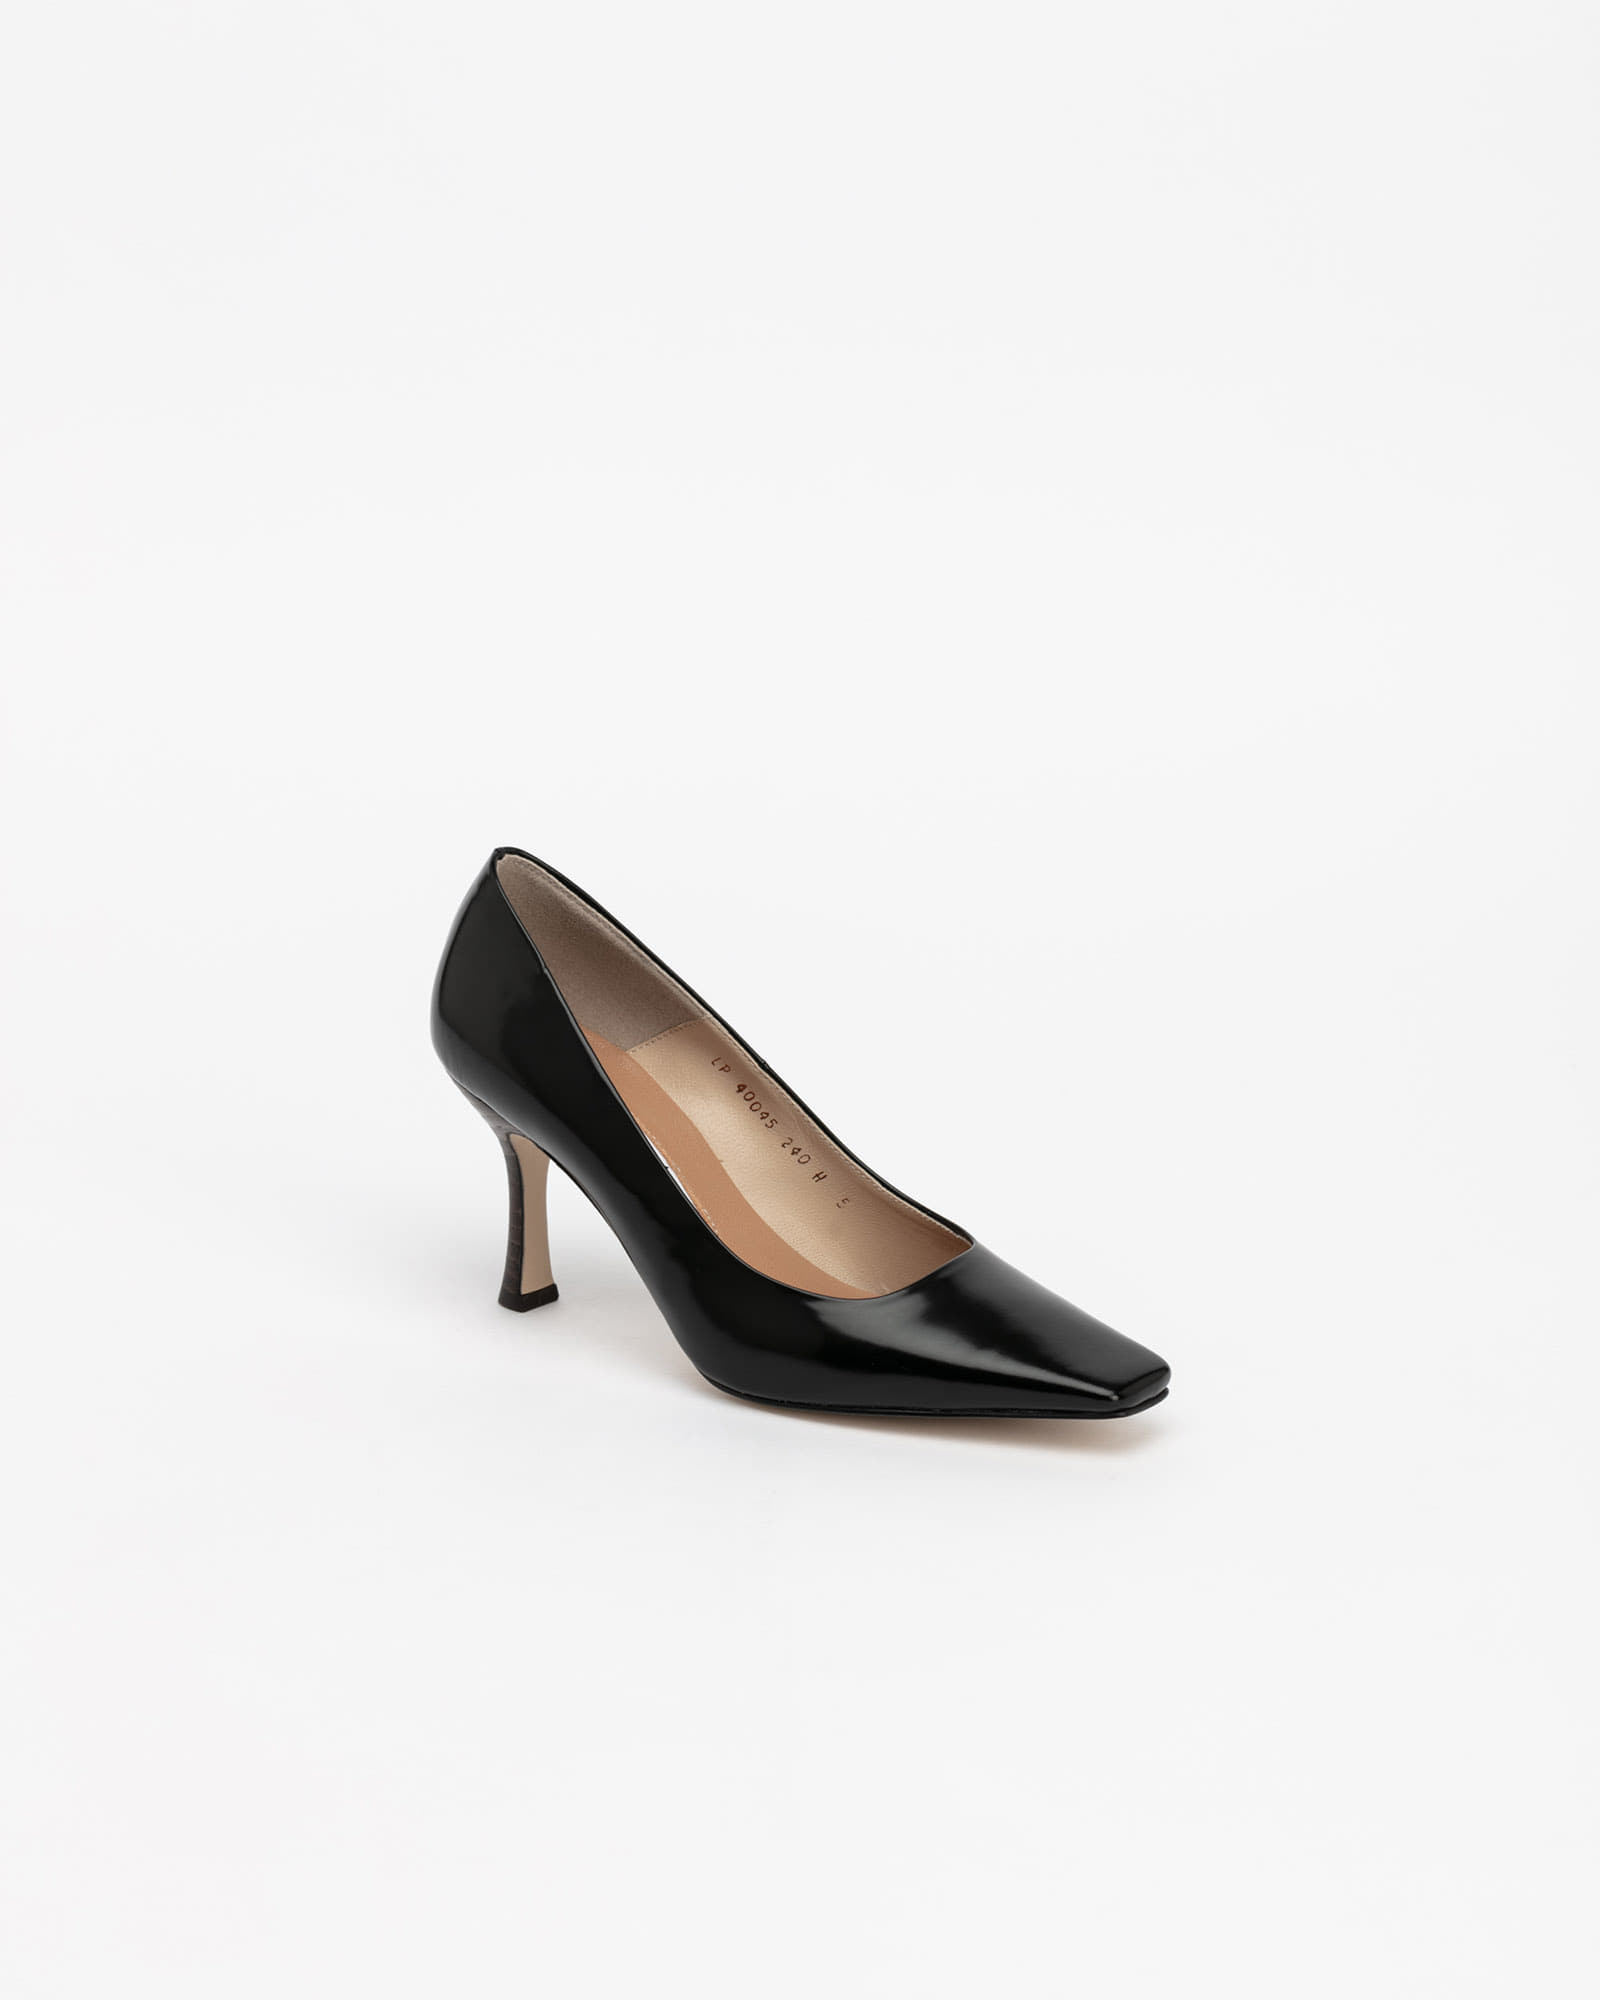 Seraff Pumps in Black Box